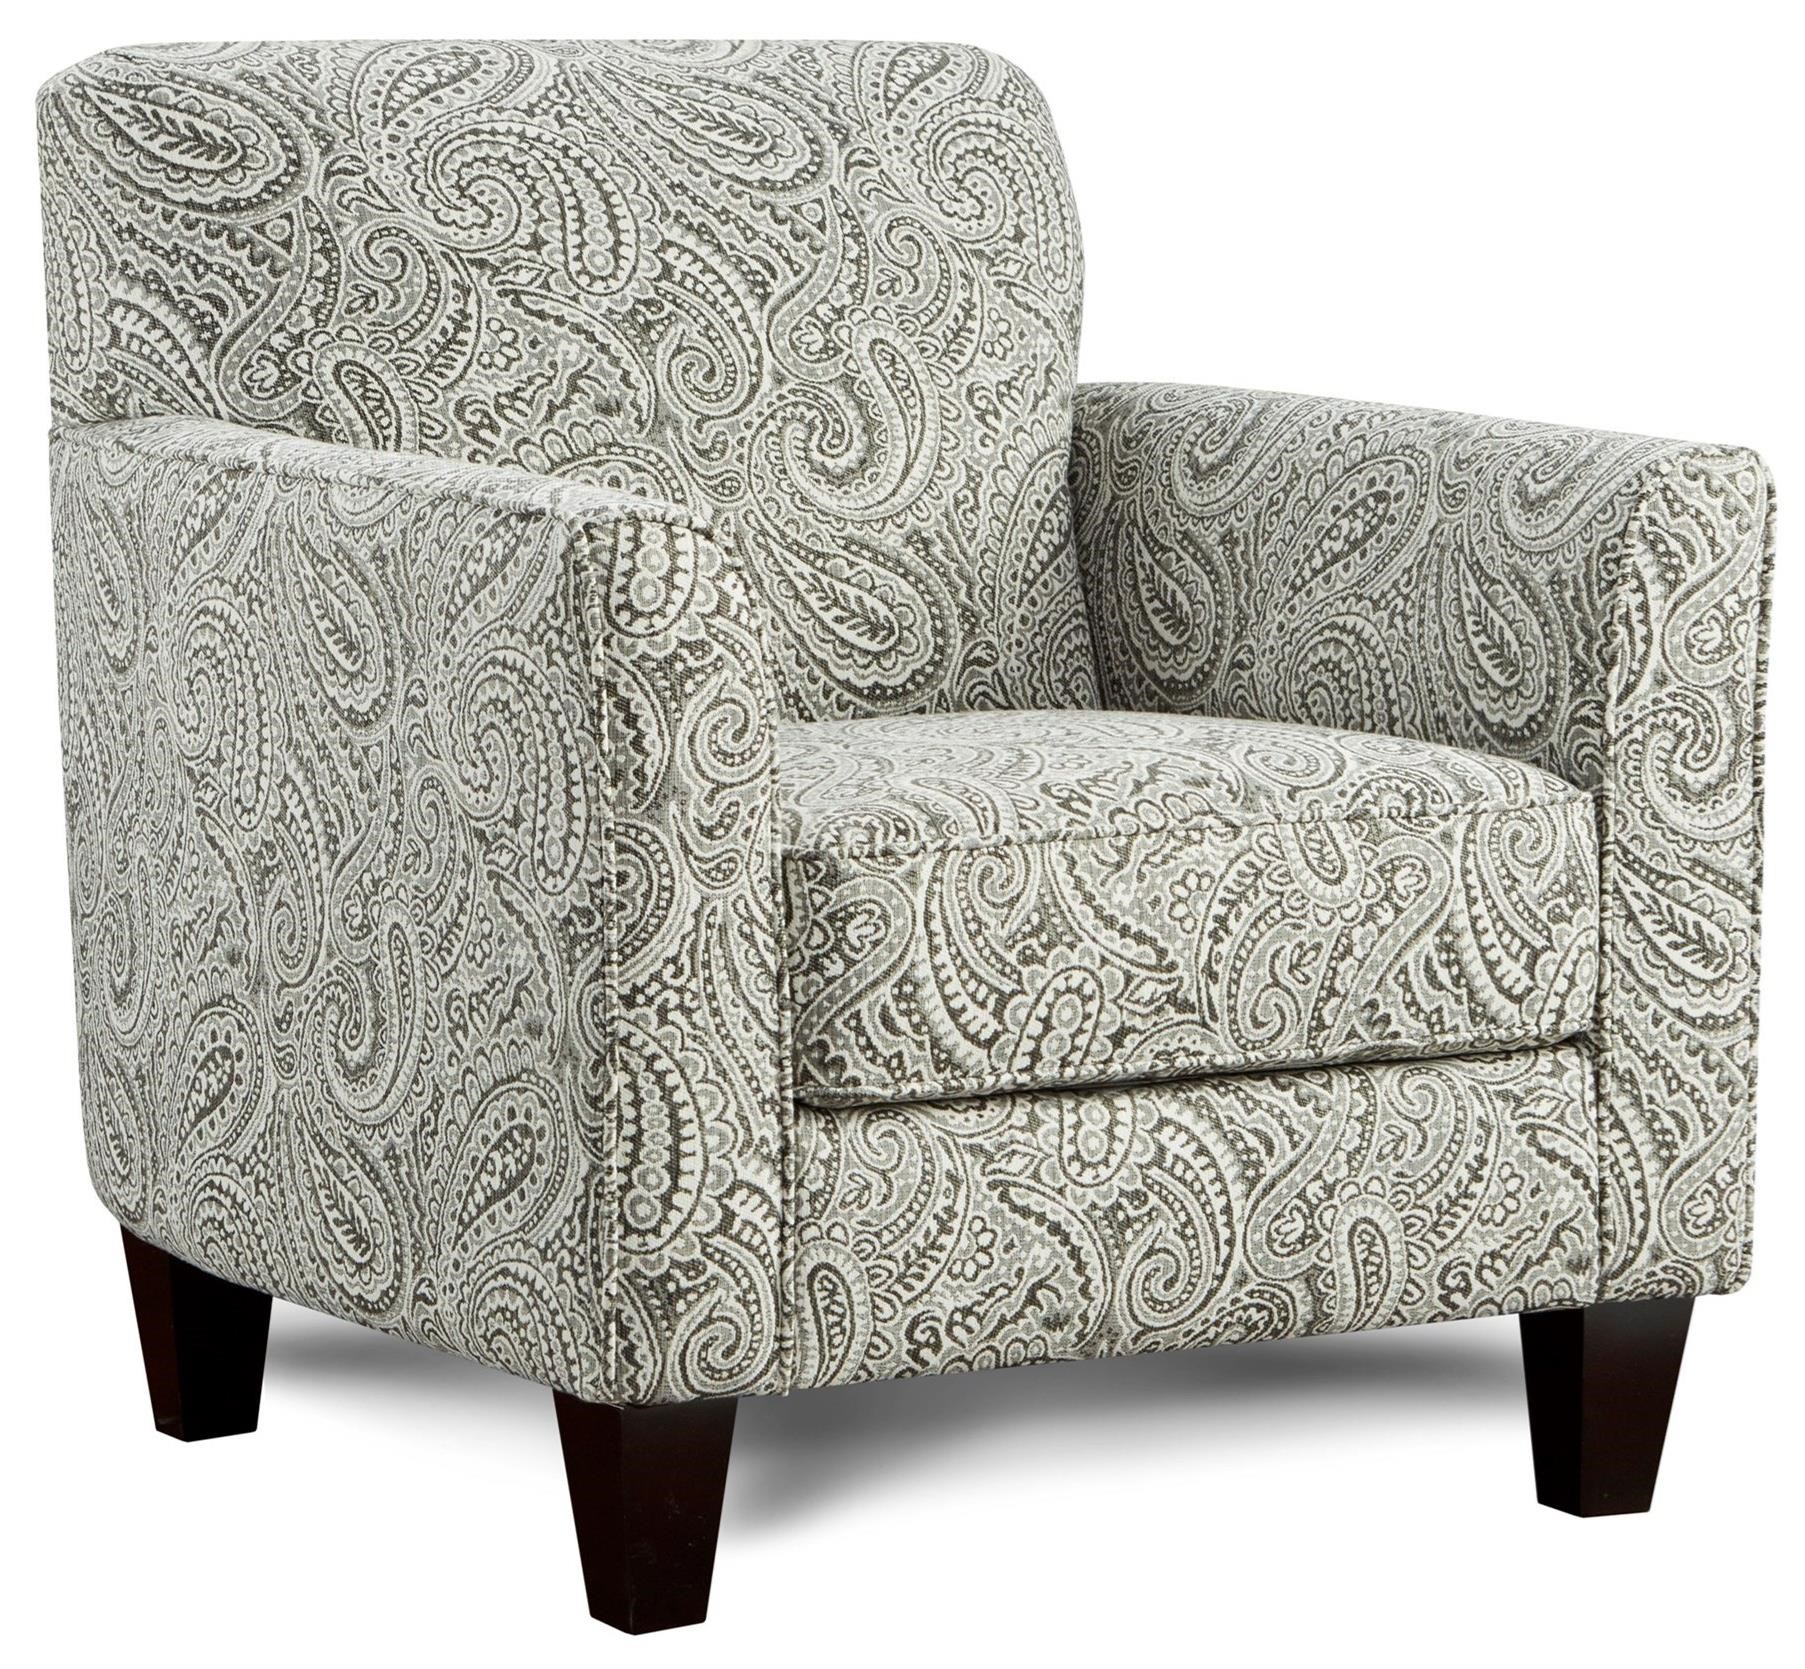 2330 TRUTH OR DARE Chair by Fusion Furniture at Lindy's Furniture Company